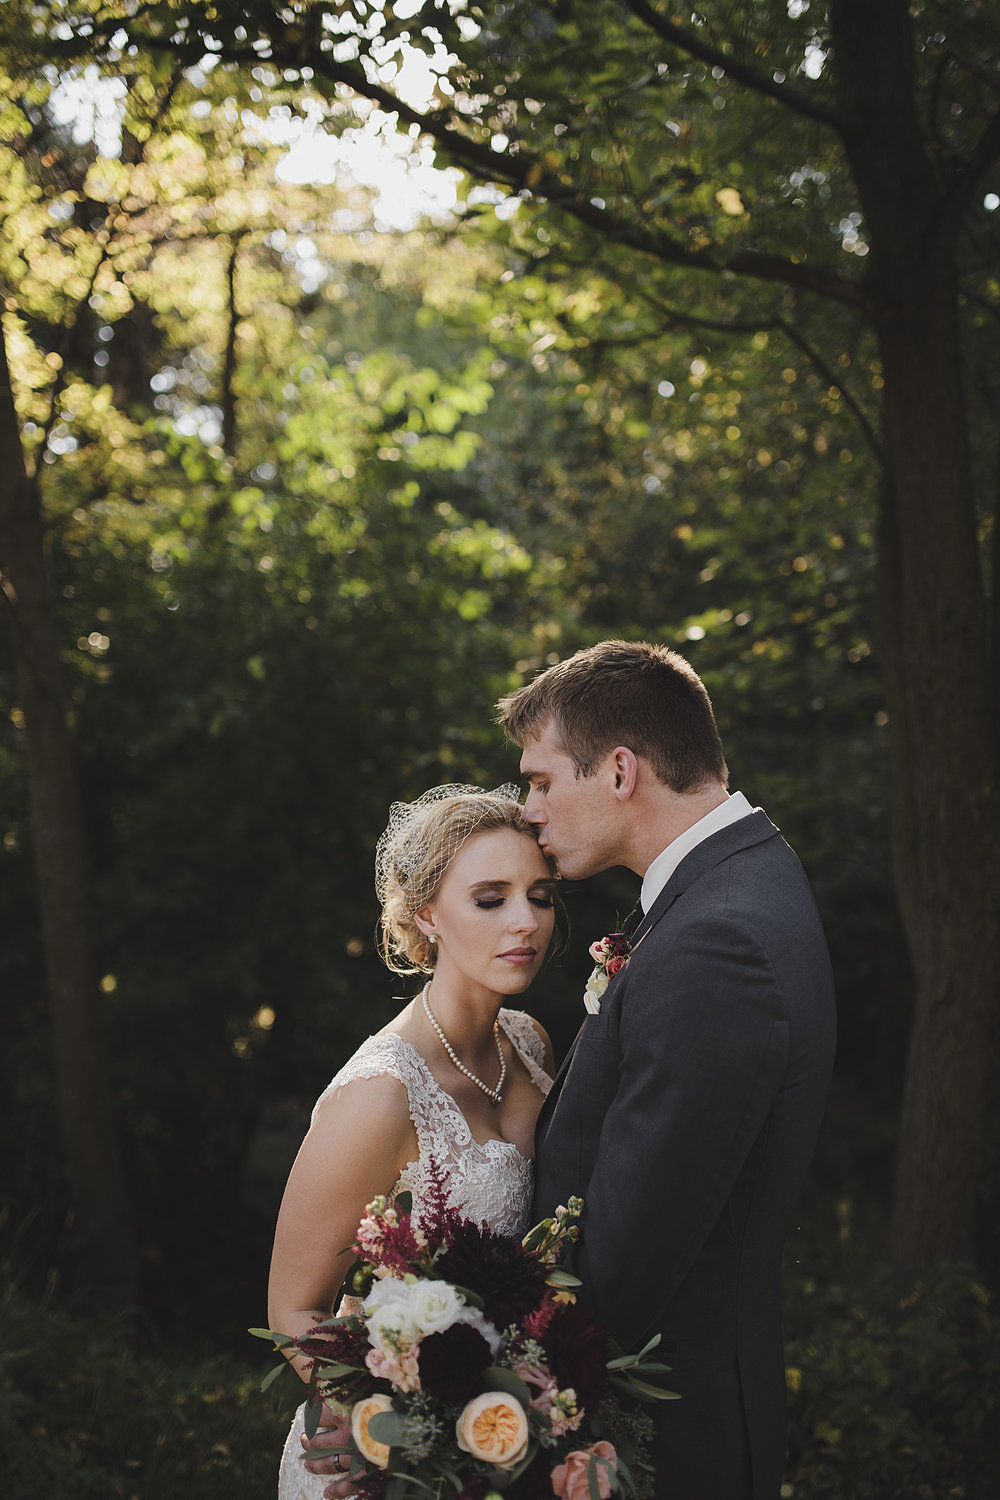 event and wedding planner madison wisconsin wedding planning wisconsin dells wedding